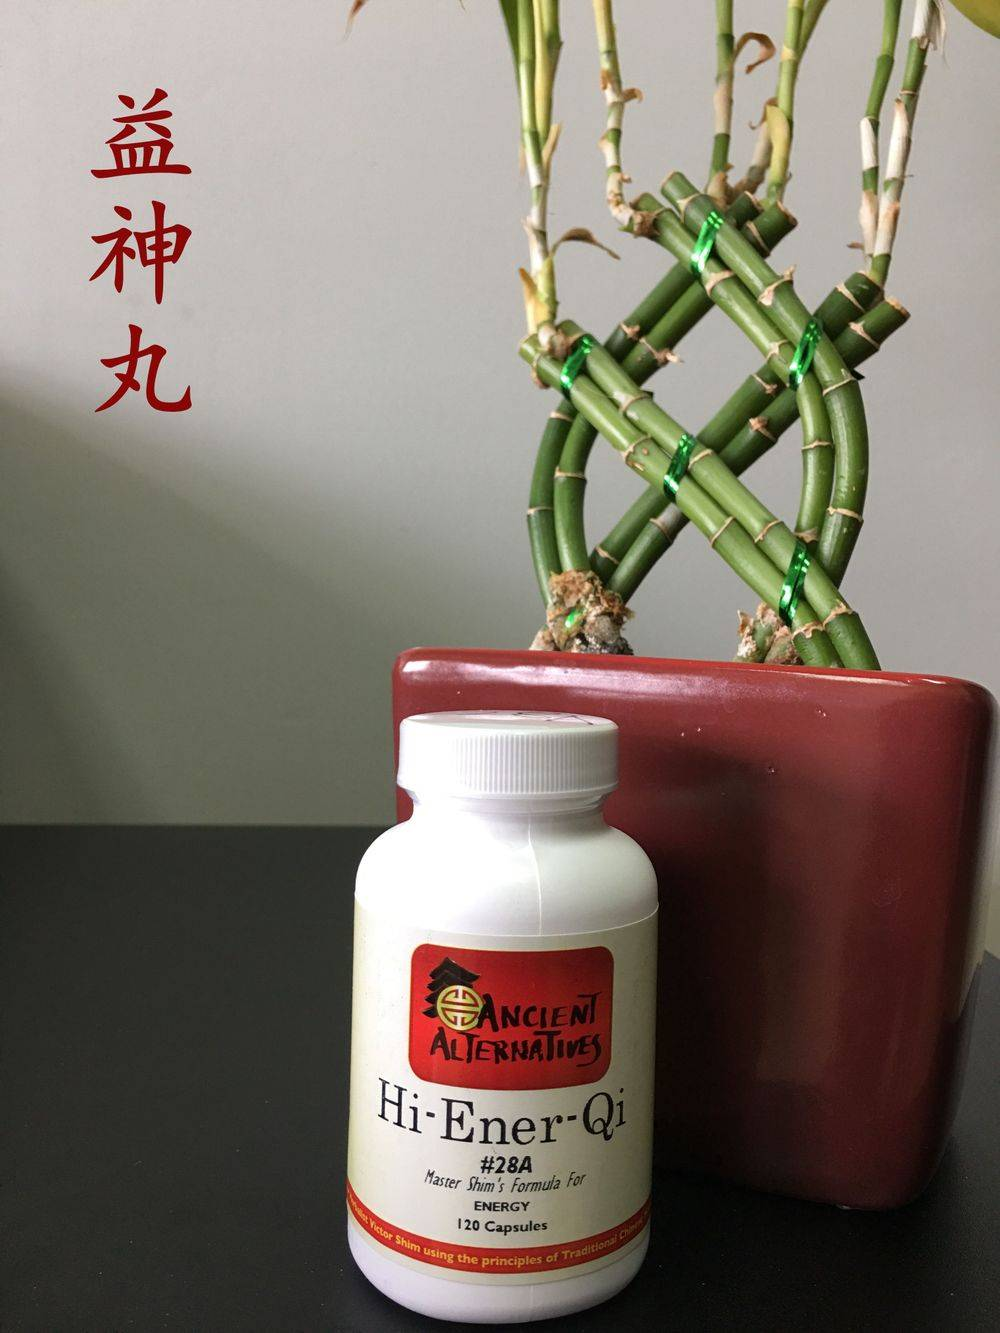 Relieves fatigue, tiredness and lethargy. (120 capsules)